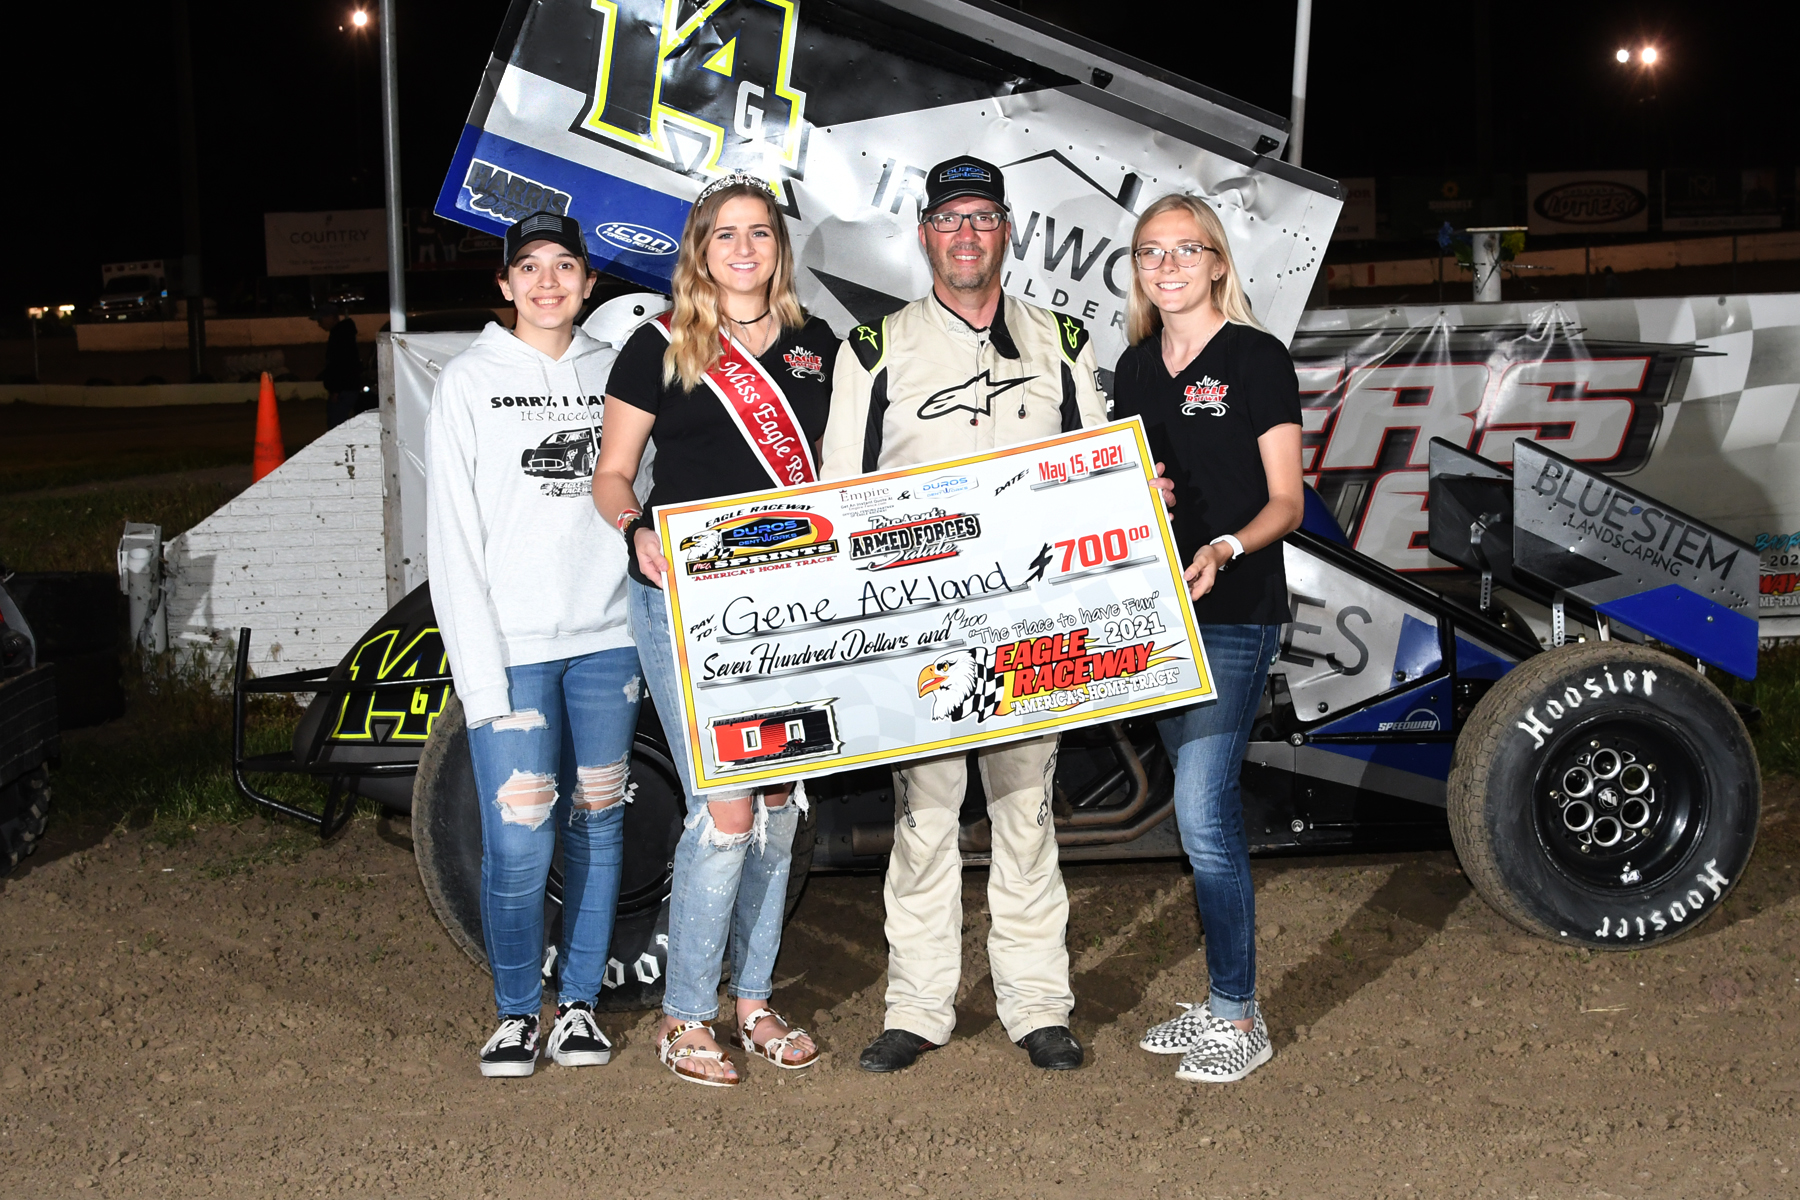 Ackland takes the win on Armed Forces Night at Eagle Raceway